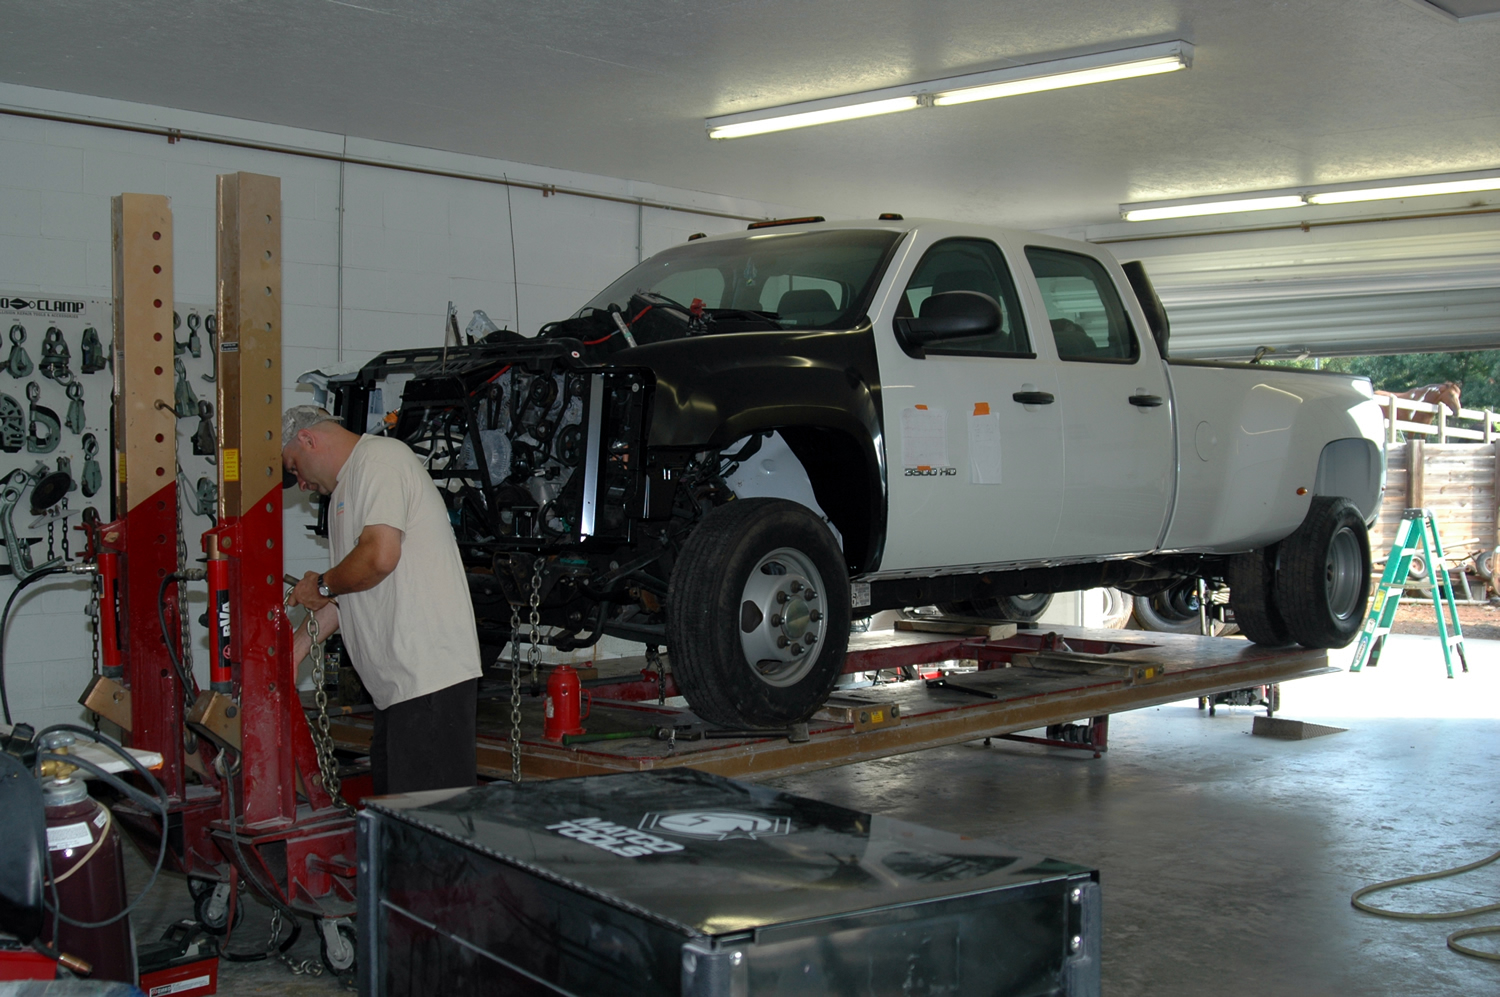 Color master collision center llc in mooresville nc for Plaza motors collision center